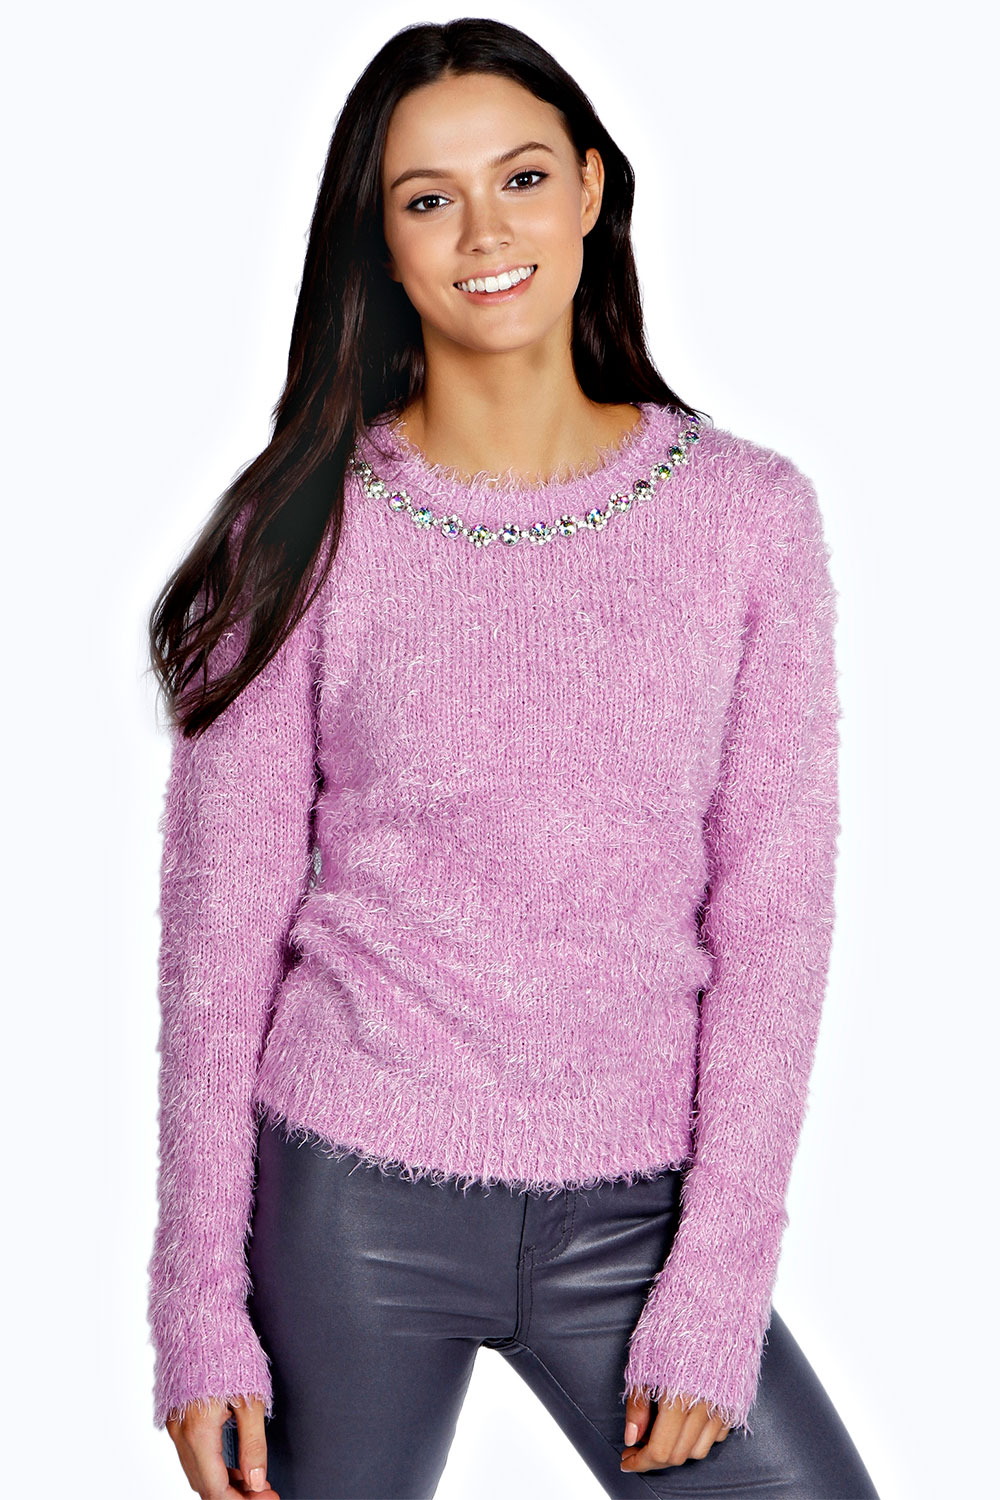 Boohoo Womens Ladies Dems Fluffy Jumper Sweater Pullover ...